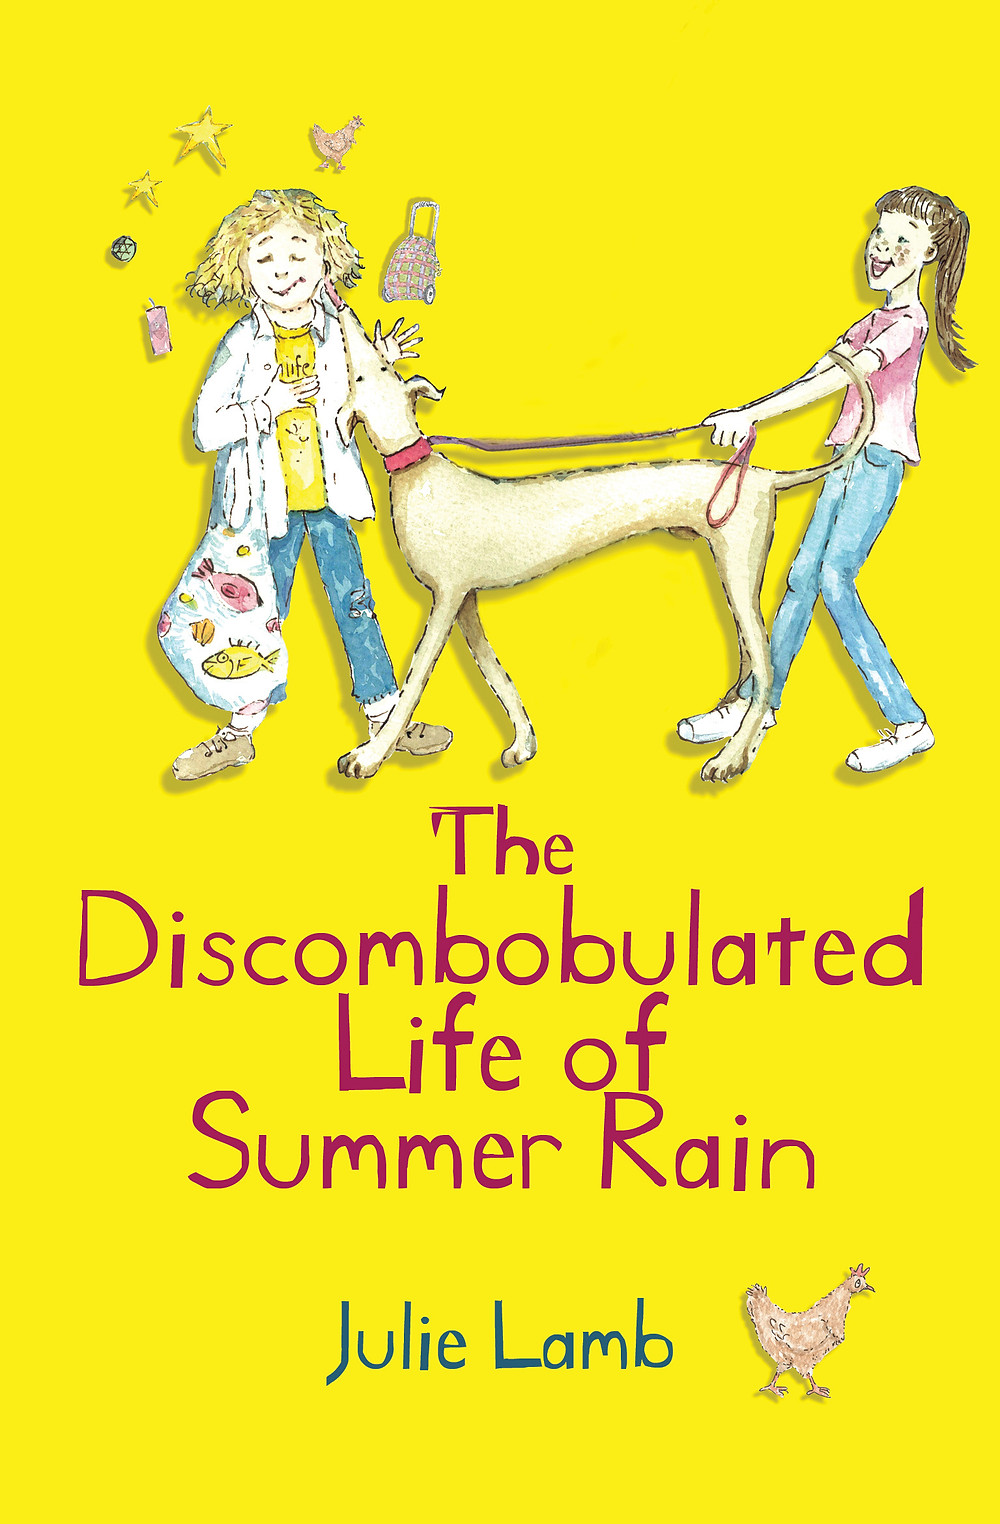 The Discombobulated Life of Summer Rain